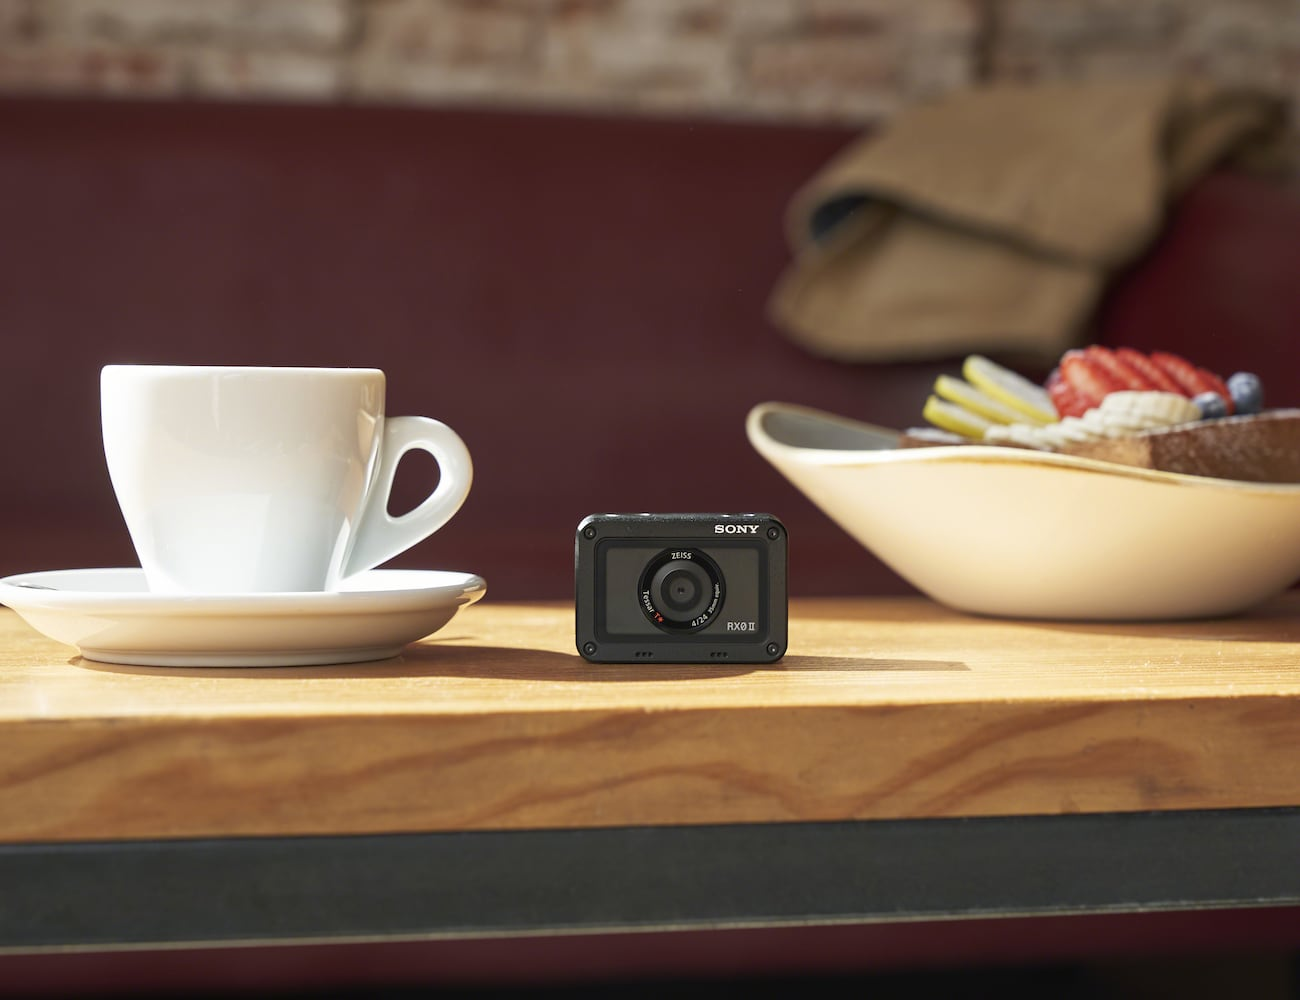 Sony RX0 II Premium Tiny Tough Camera takes photos and videos anytime, anywhere